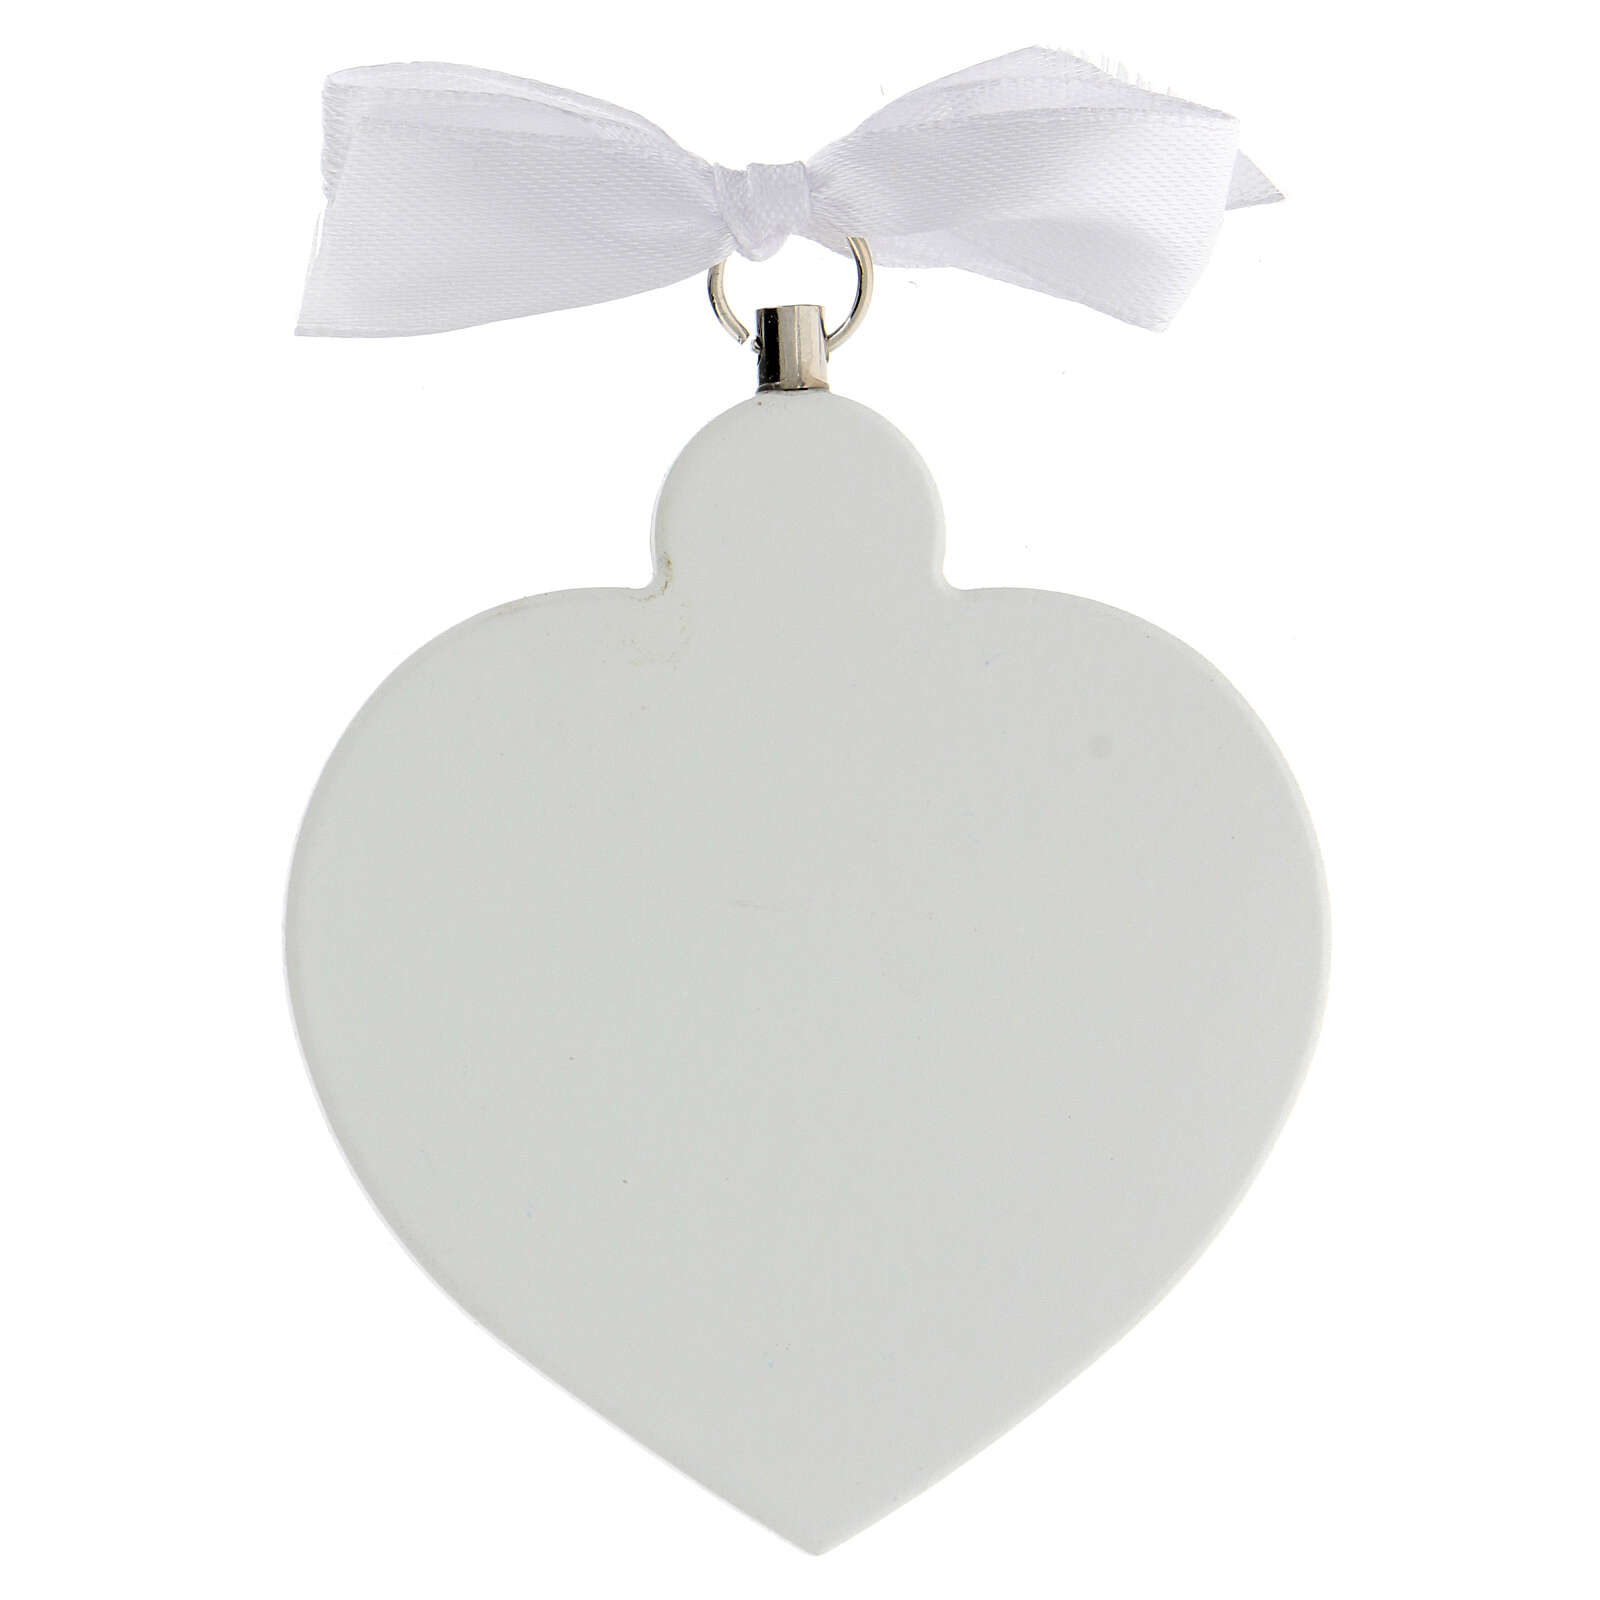 White heart with angel in prayer 4